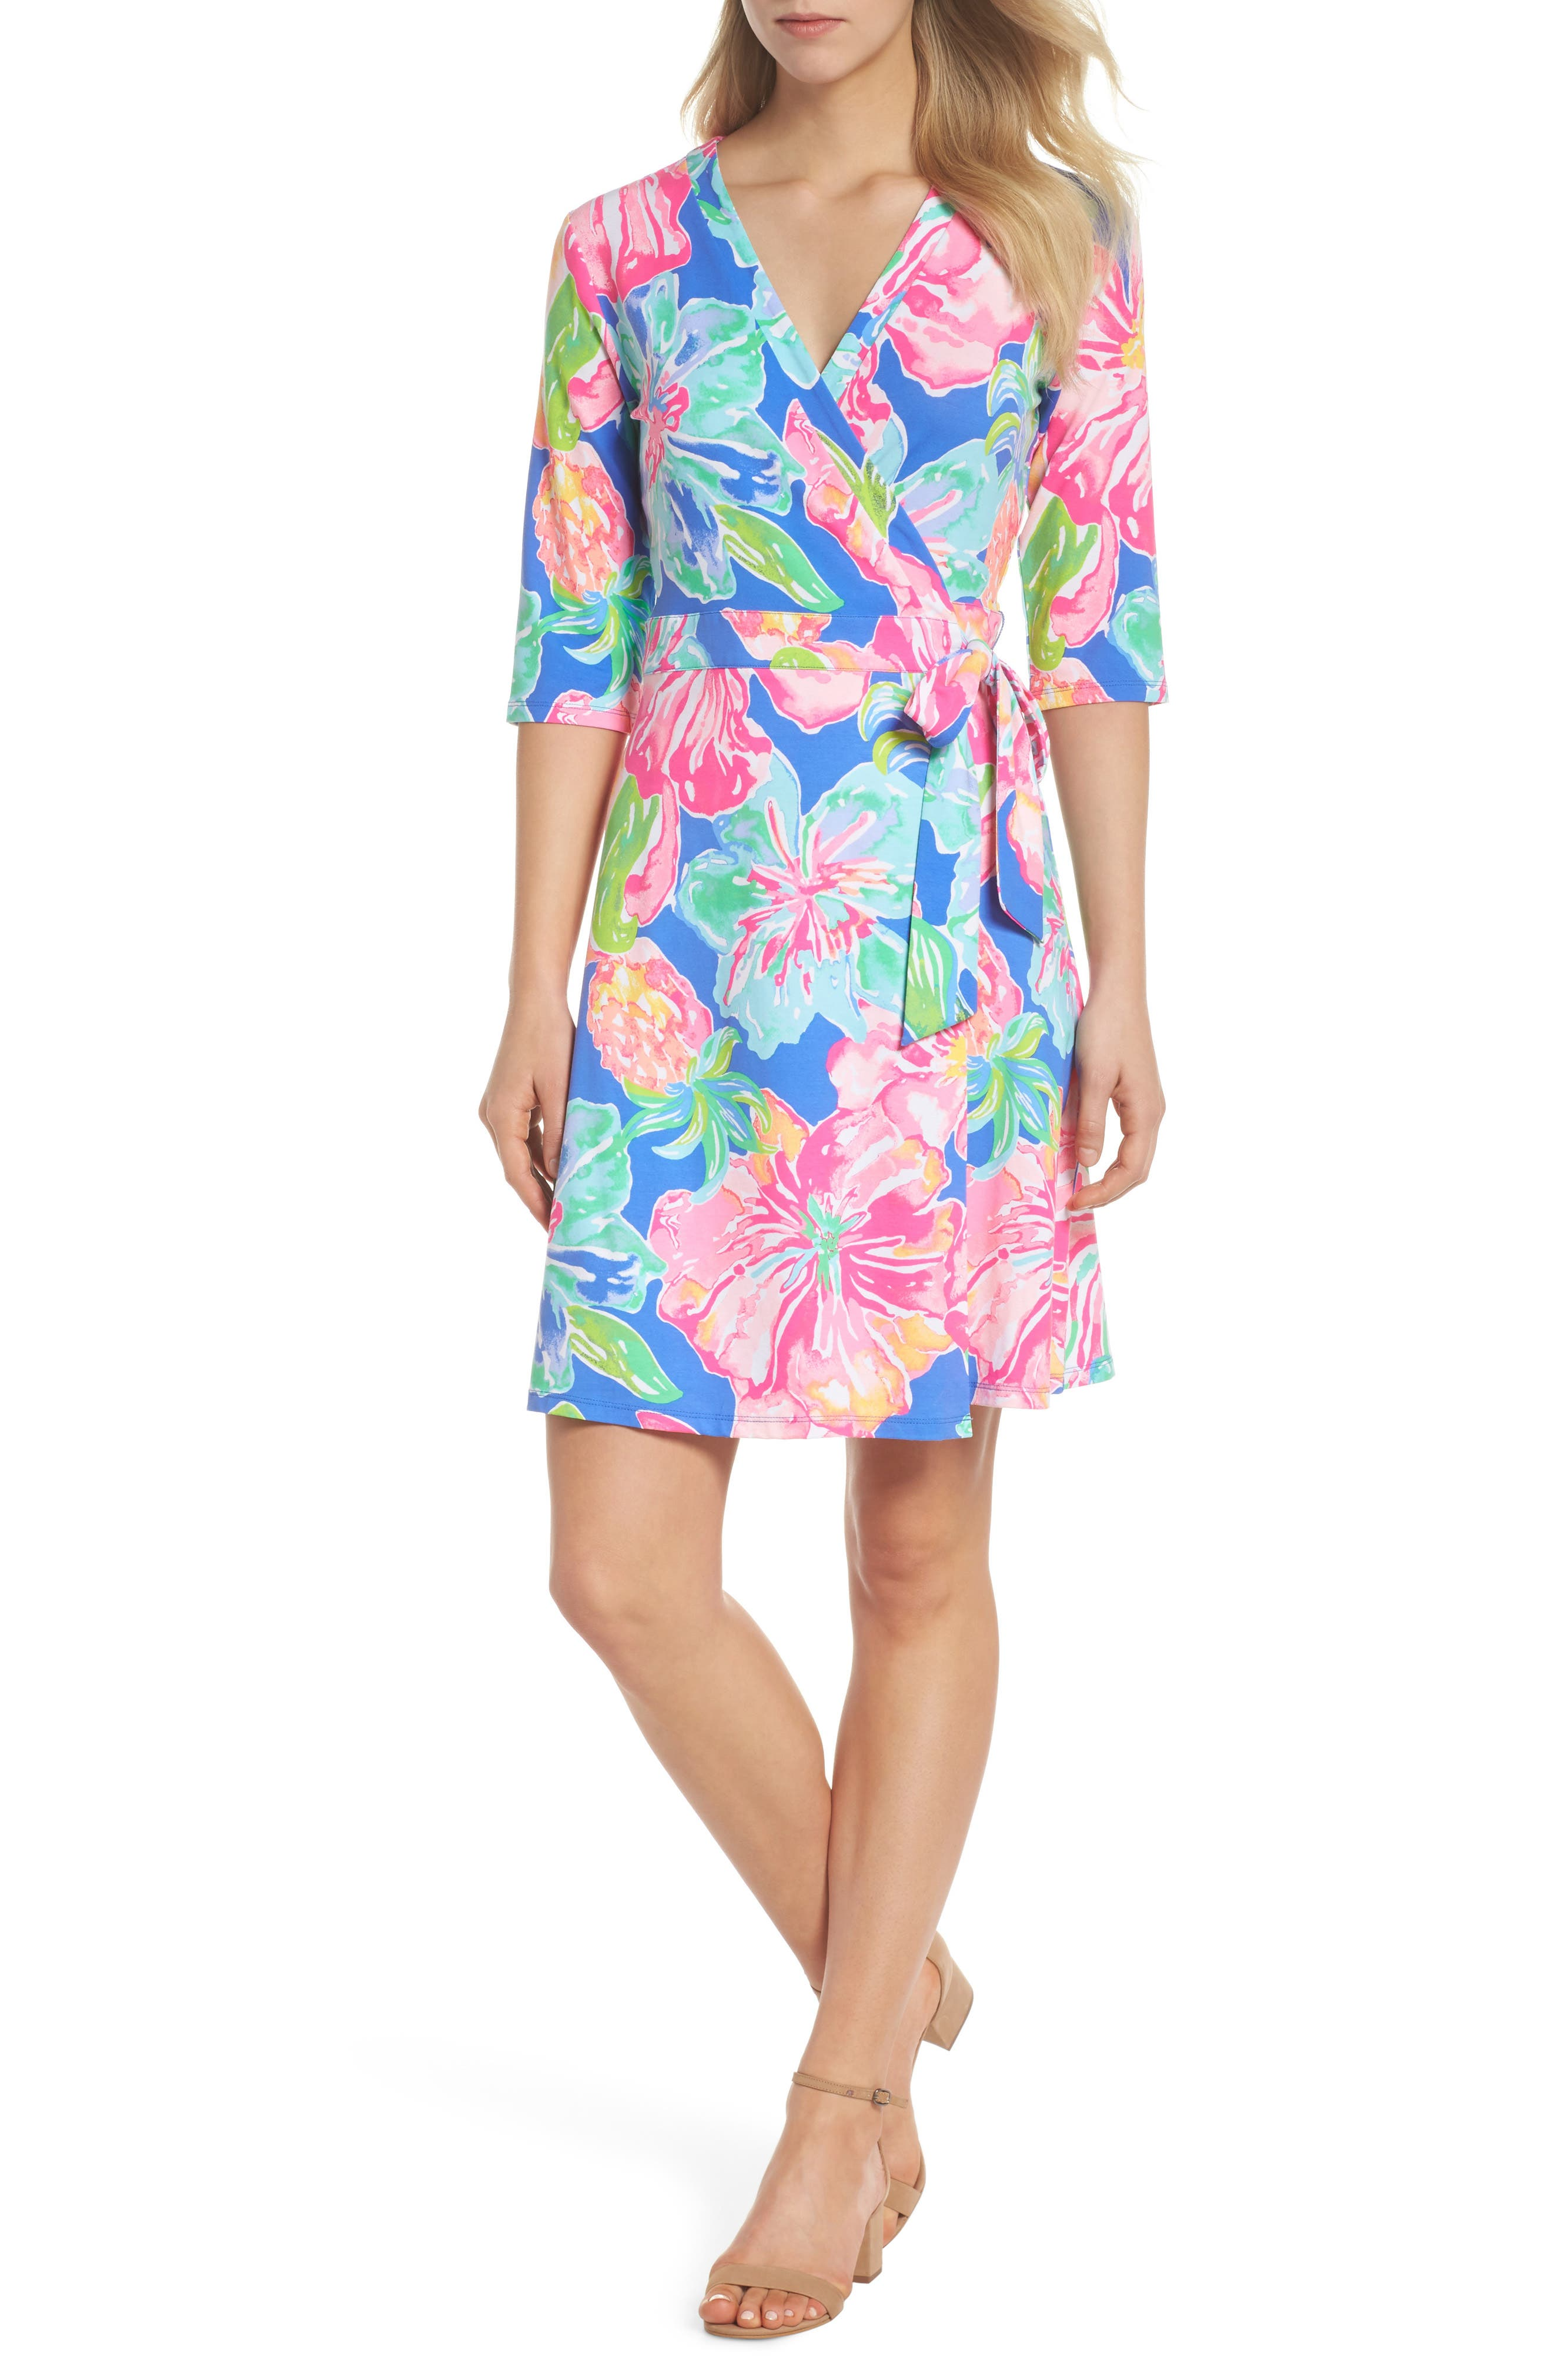 Marvista Wrap Dress,                             Alternate thumbnail 5, color,                             BECKON BLUE JUNGLE UTOPIA